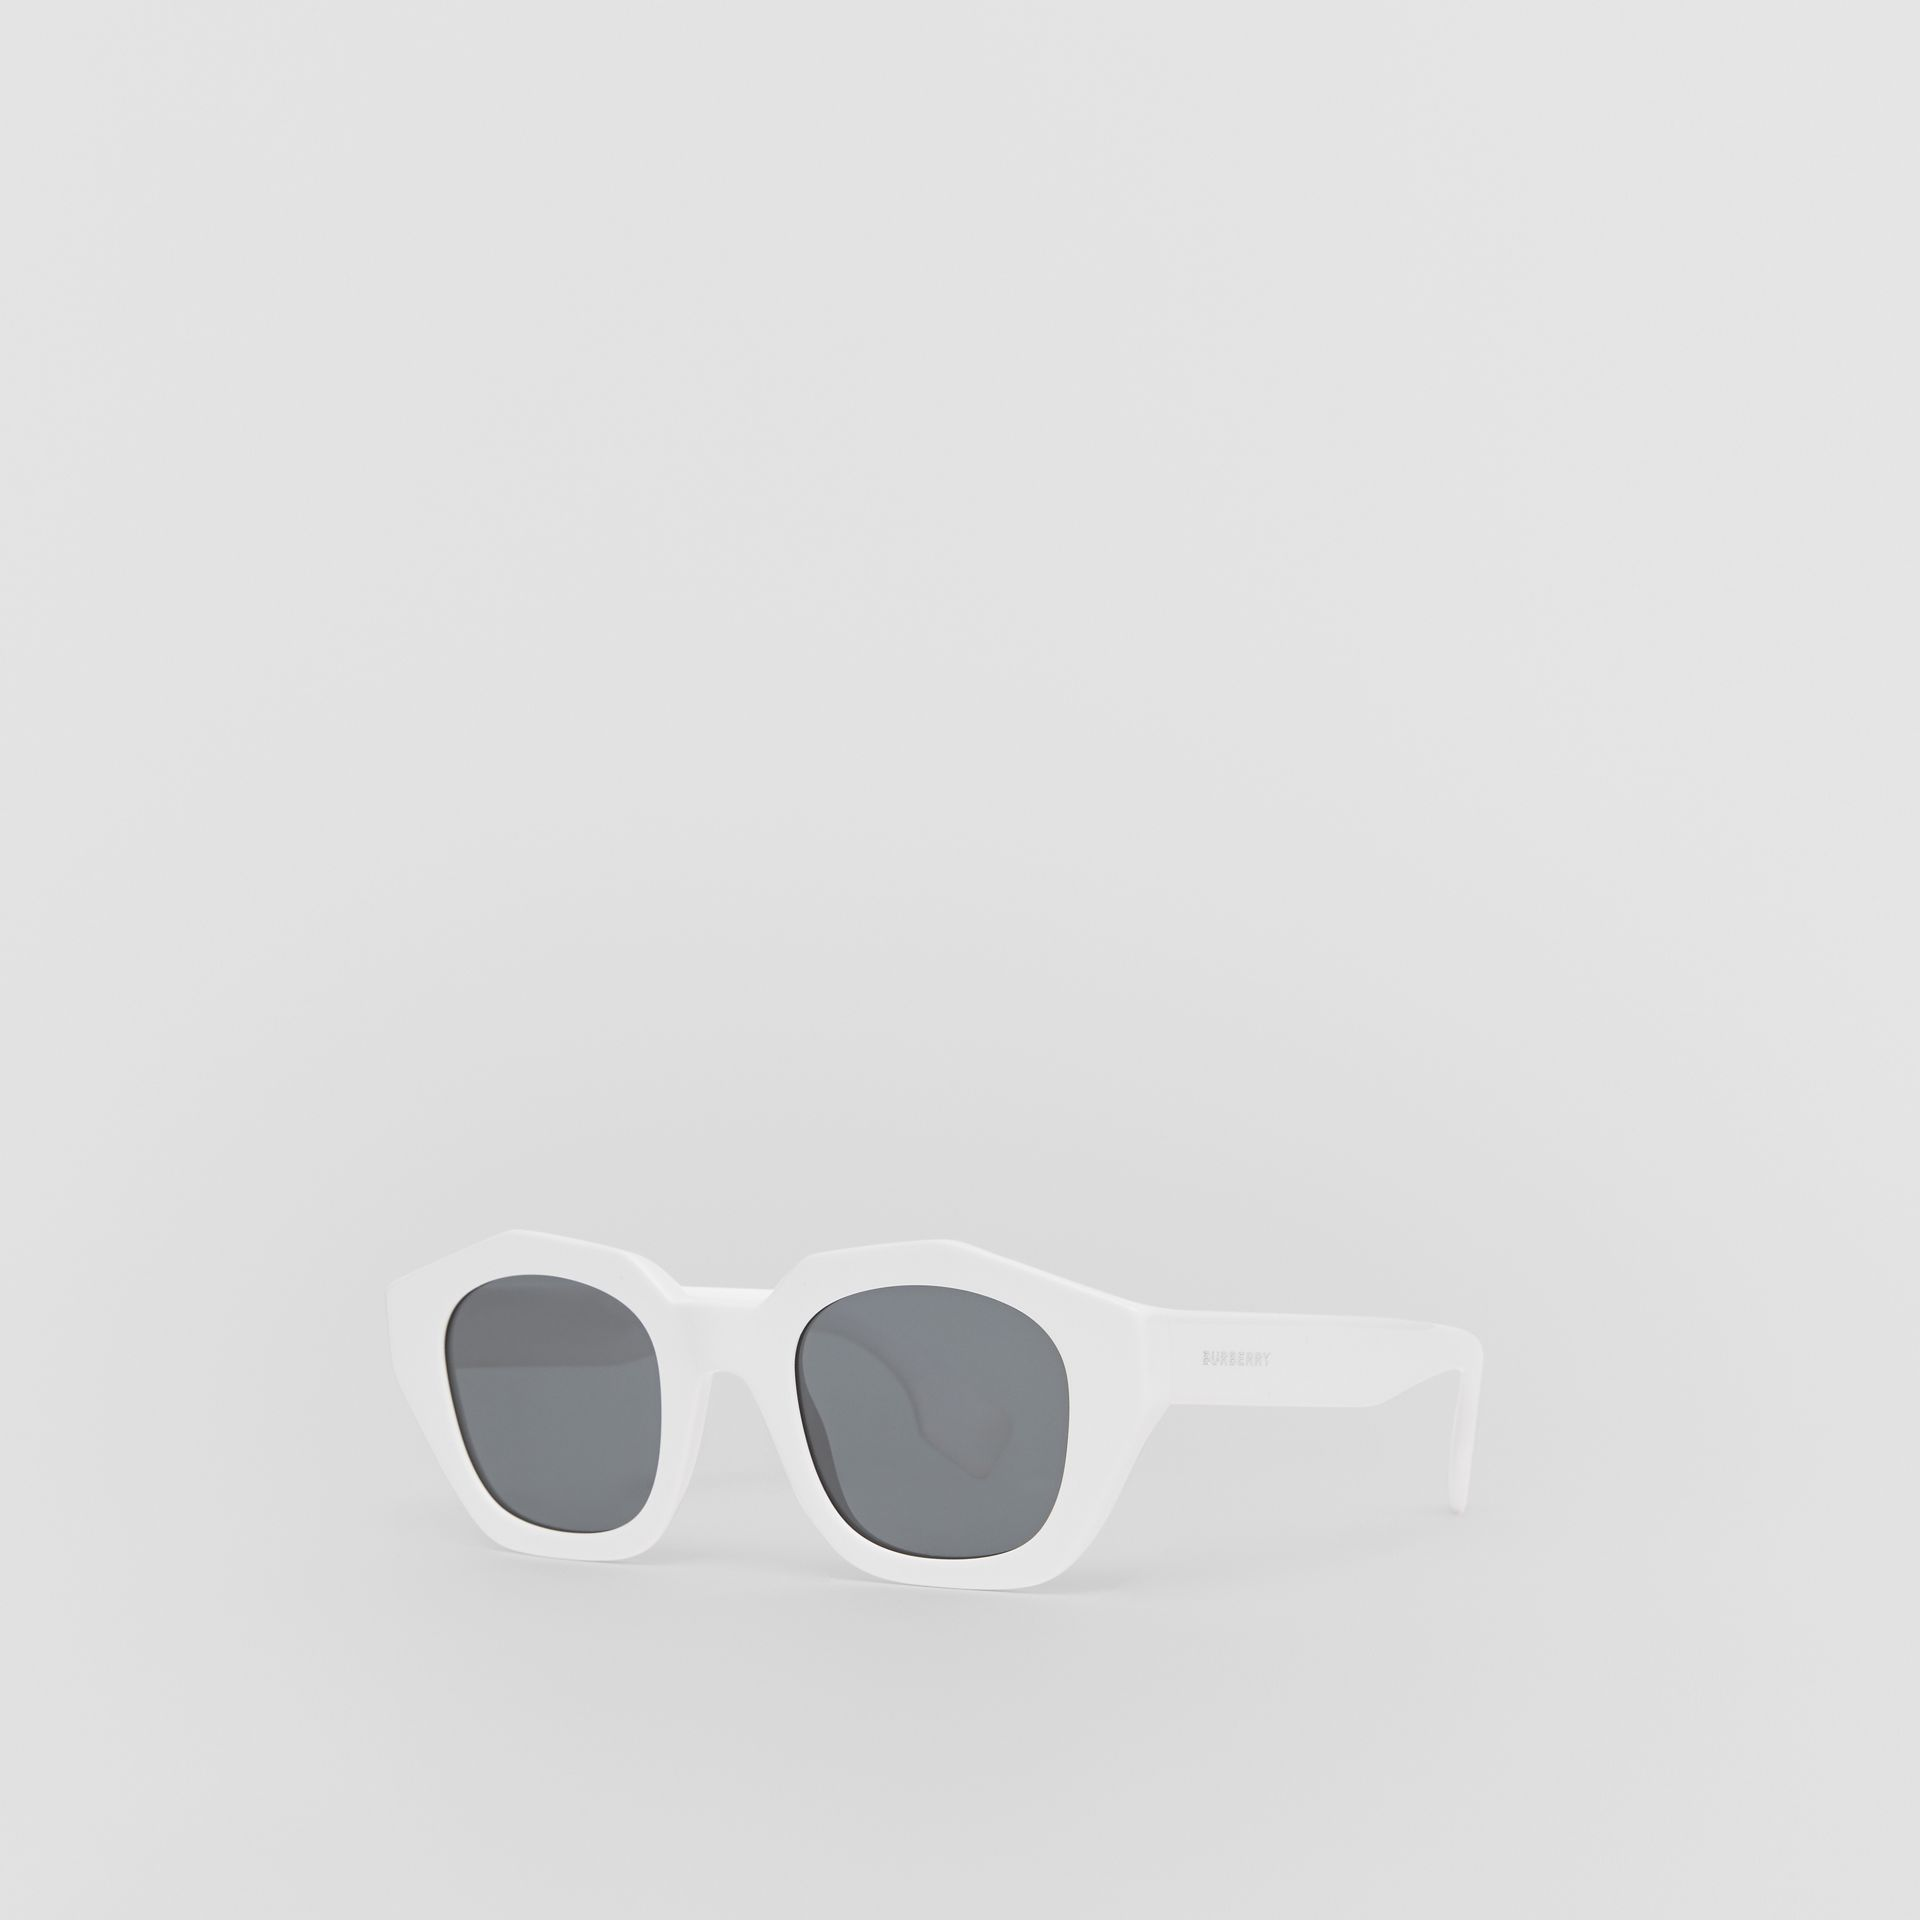 Geometric Frame Sunglasses in White - Women | Burberry Canada - gallery image 5